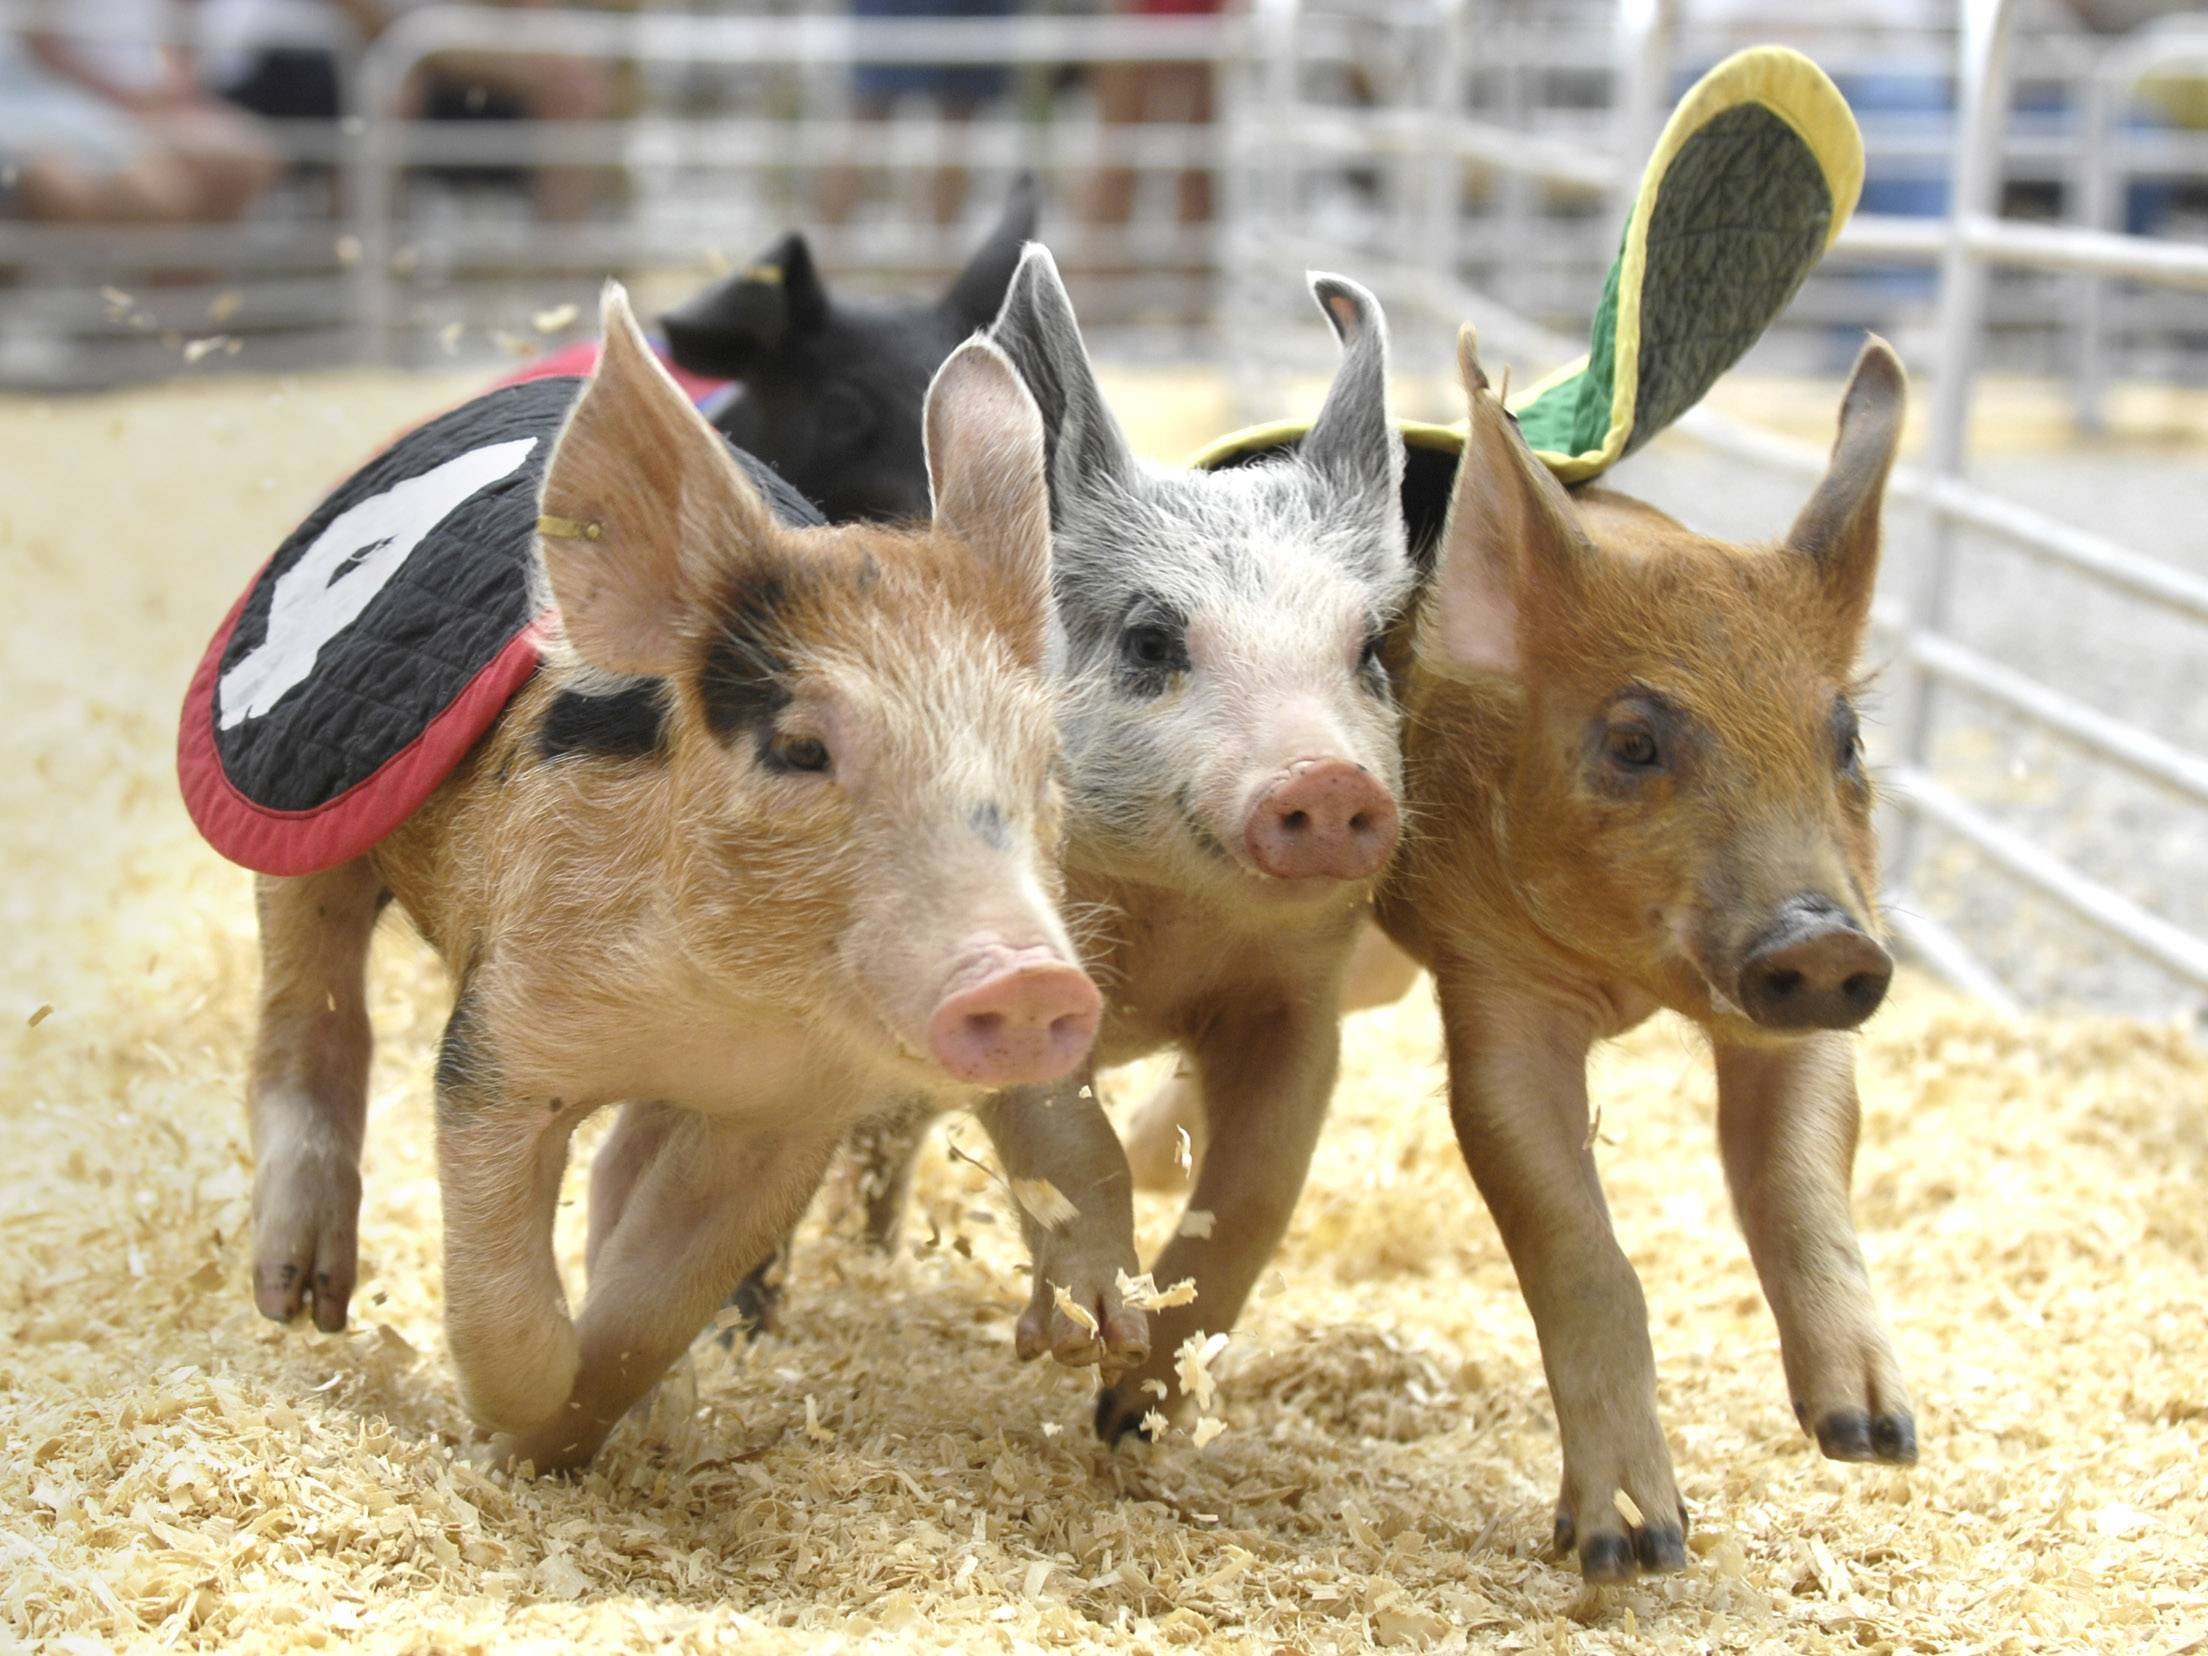 Swifty Swine Racing Pigs return to the Kane County Fair in St. Charles.